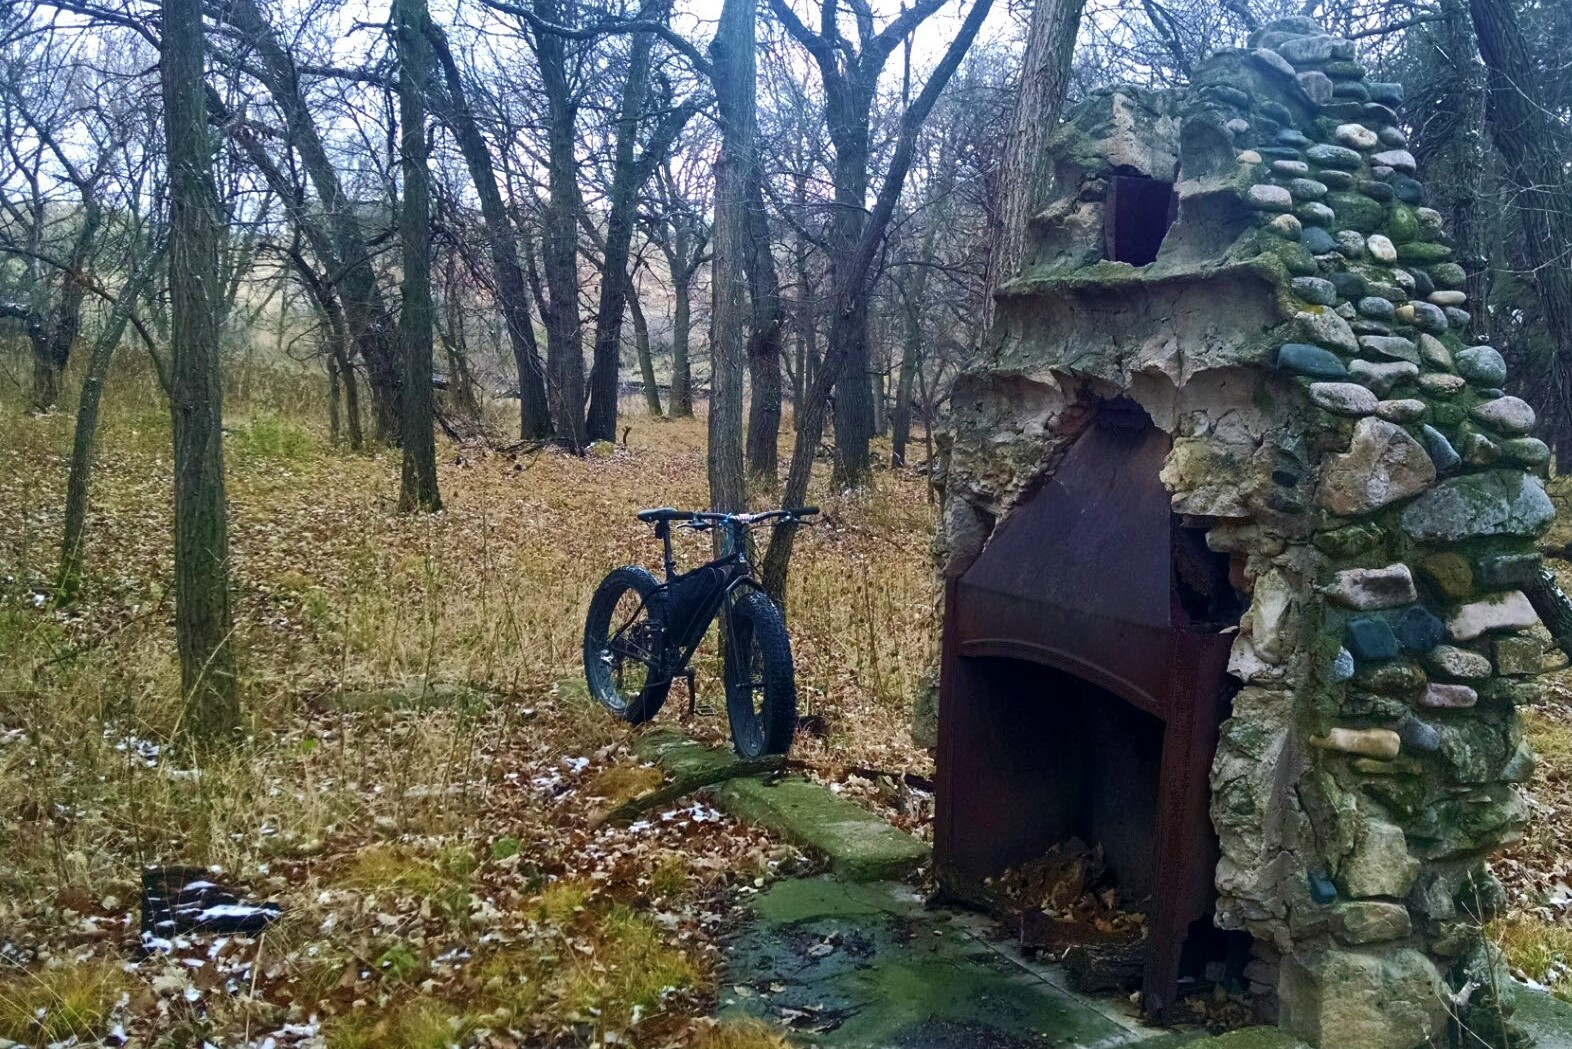 5 - day 2 - bike at ruins